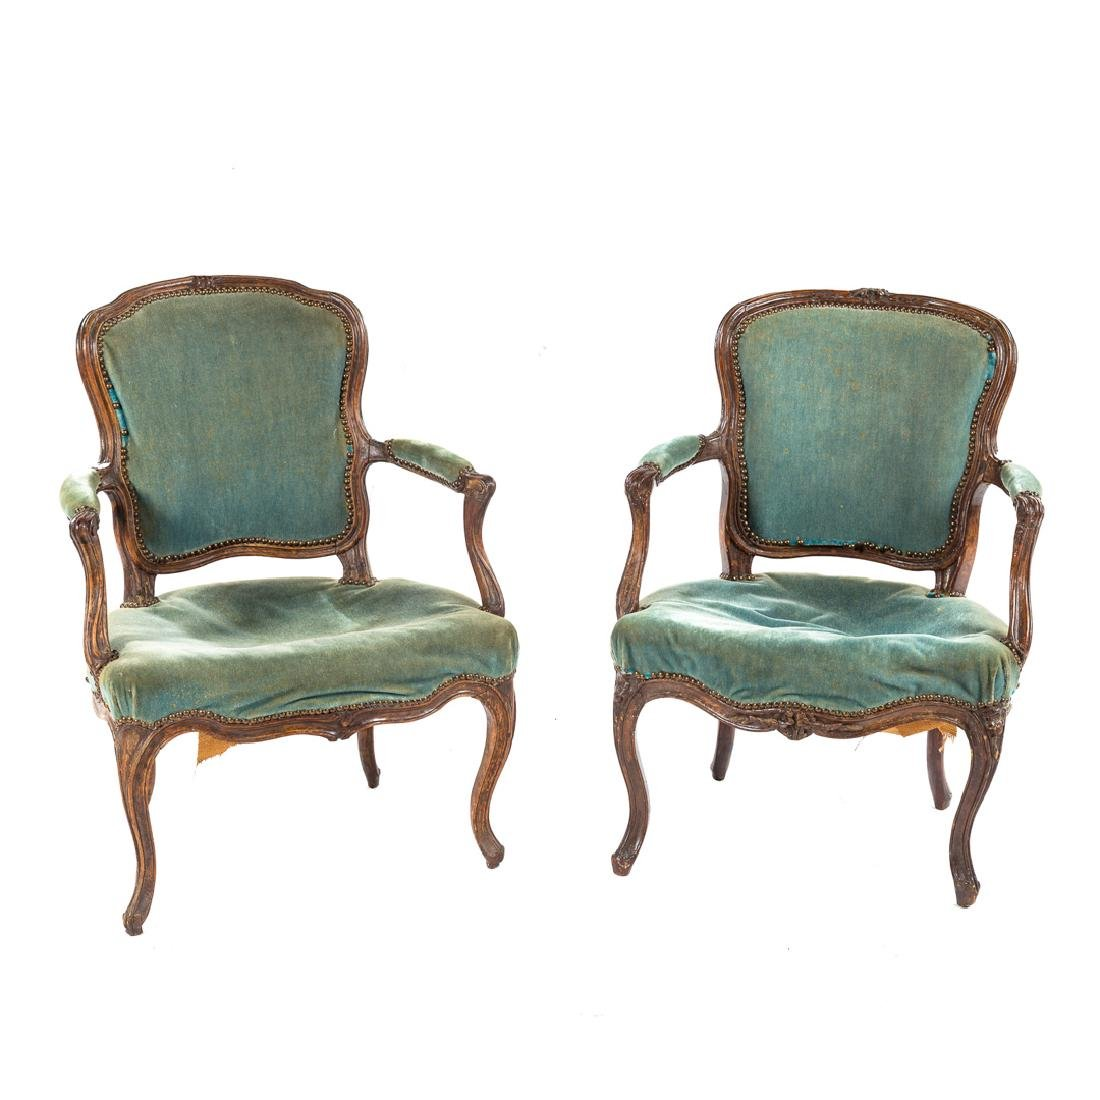 Two Louis XV carved walnut fauteuils